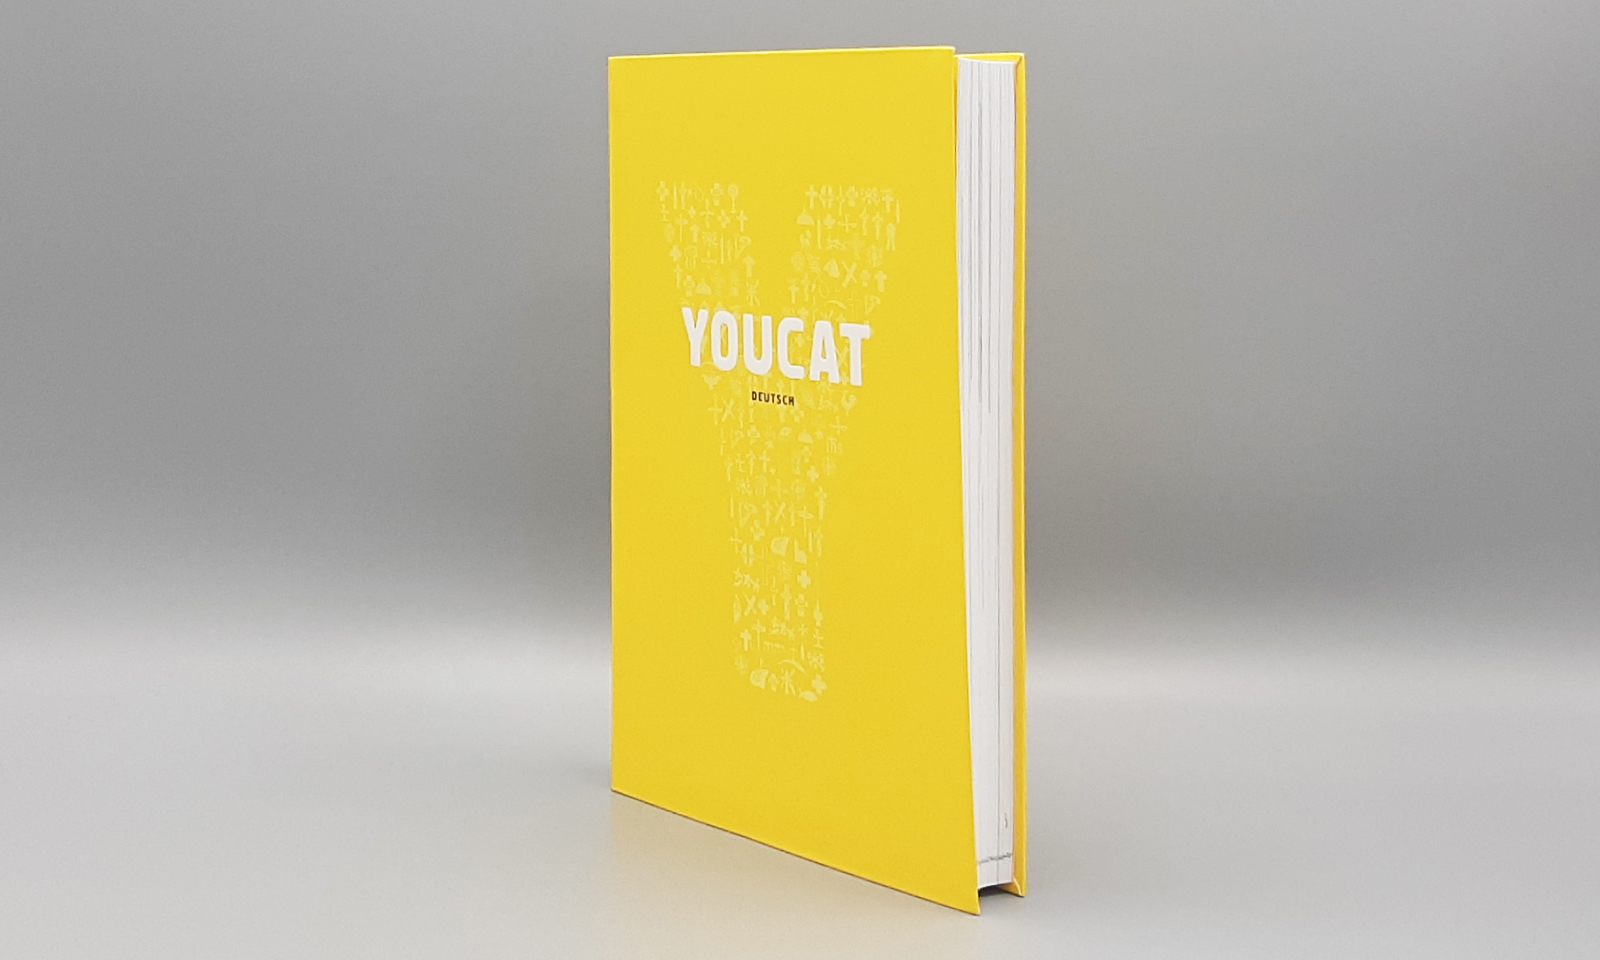 YOUCAT deutsch1